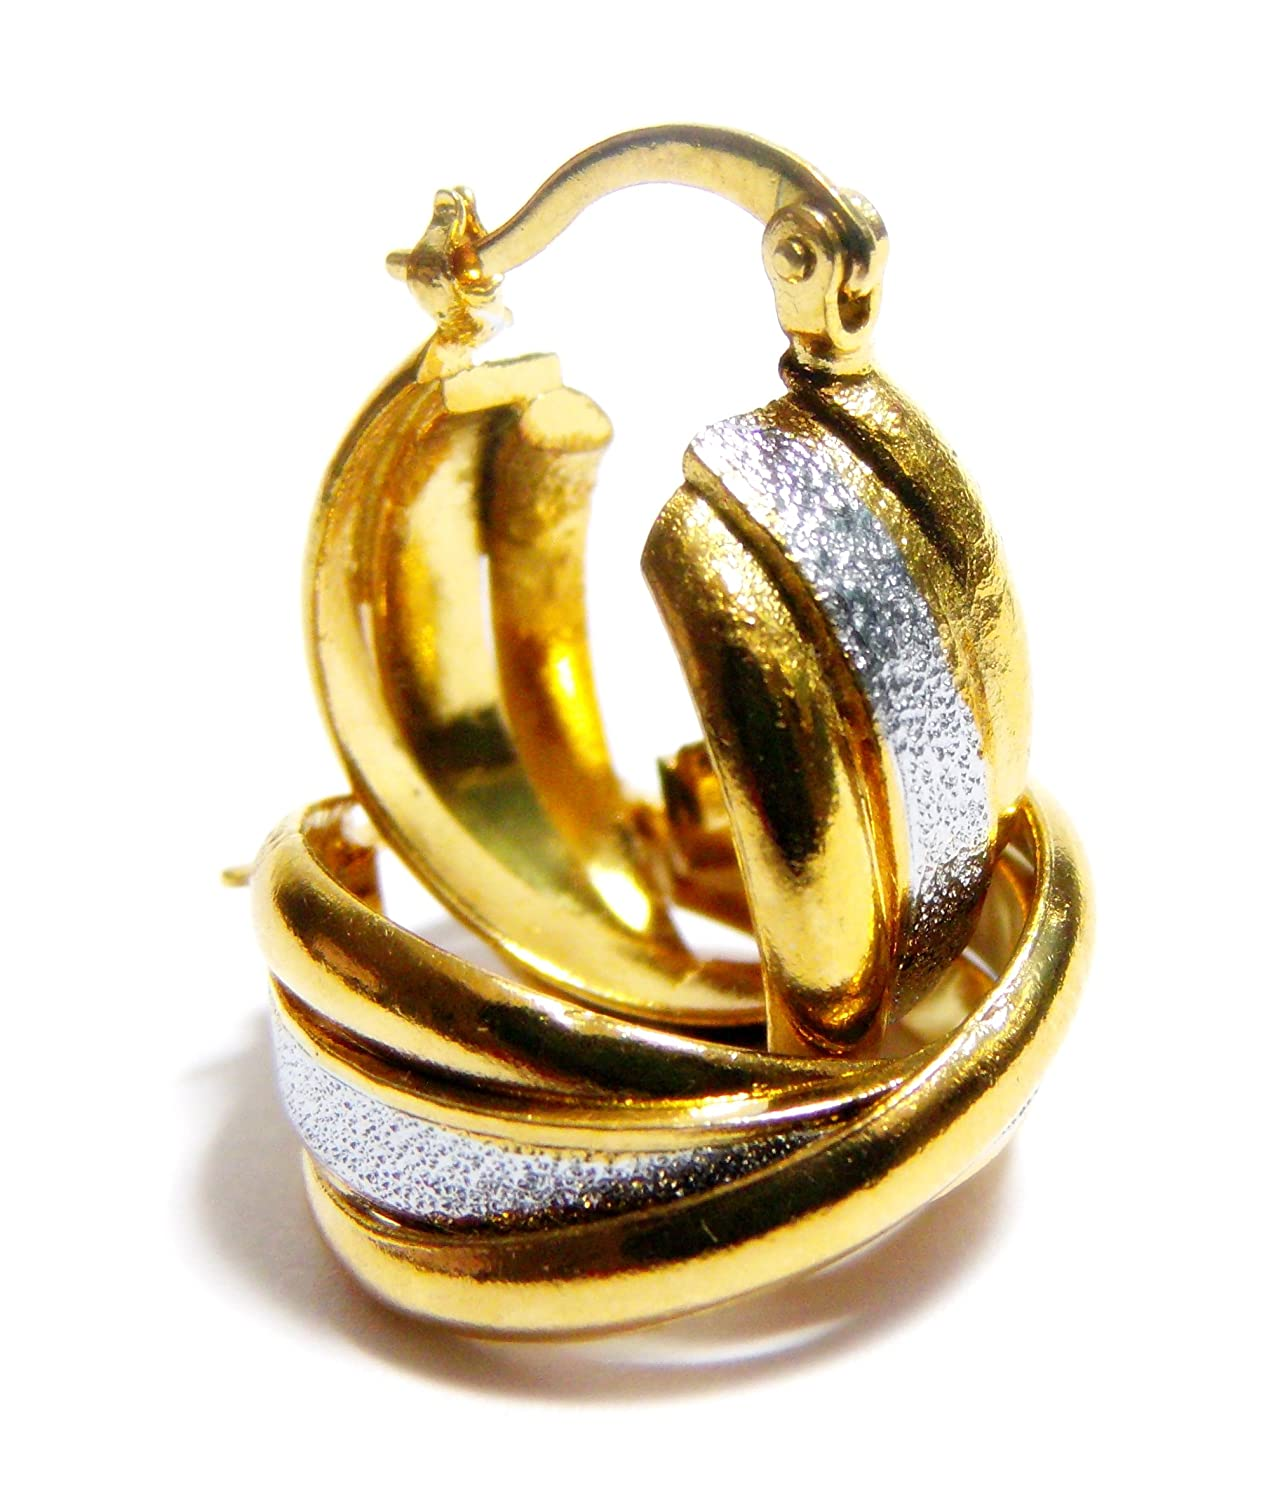 0.82 Inch Two Tone Silver Brushed Satin Glitter /& Shiny Yellow Gold Tone Stainless Steel Twisted Huggie Hoop Earrings